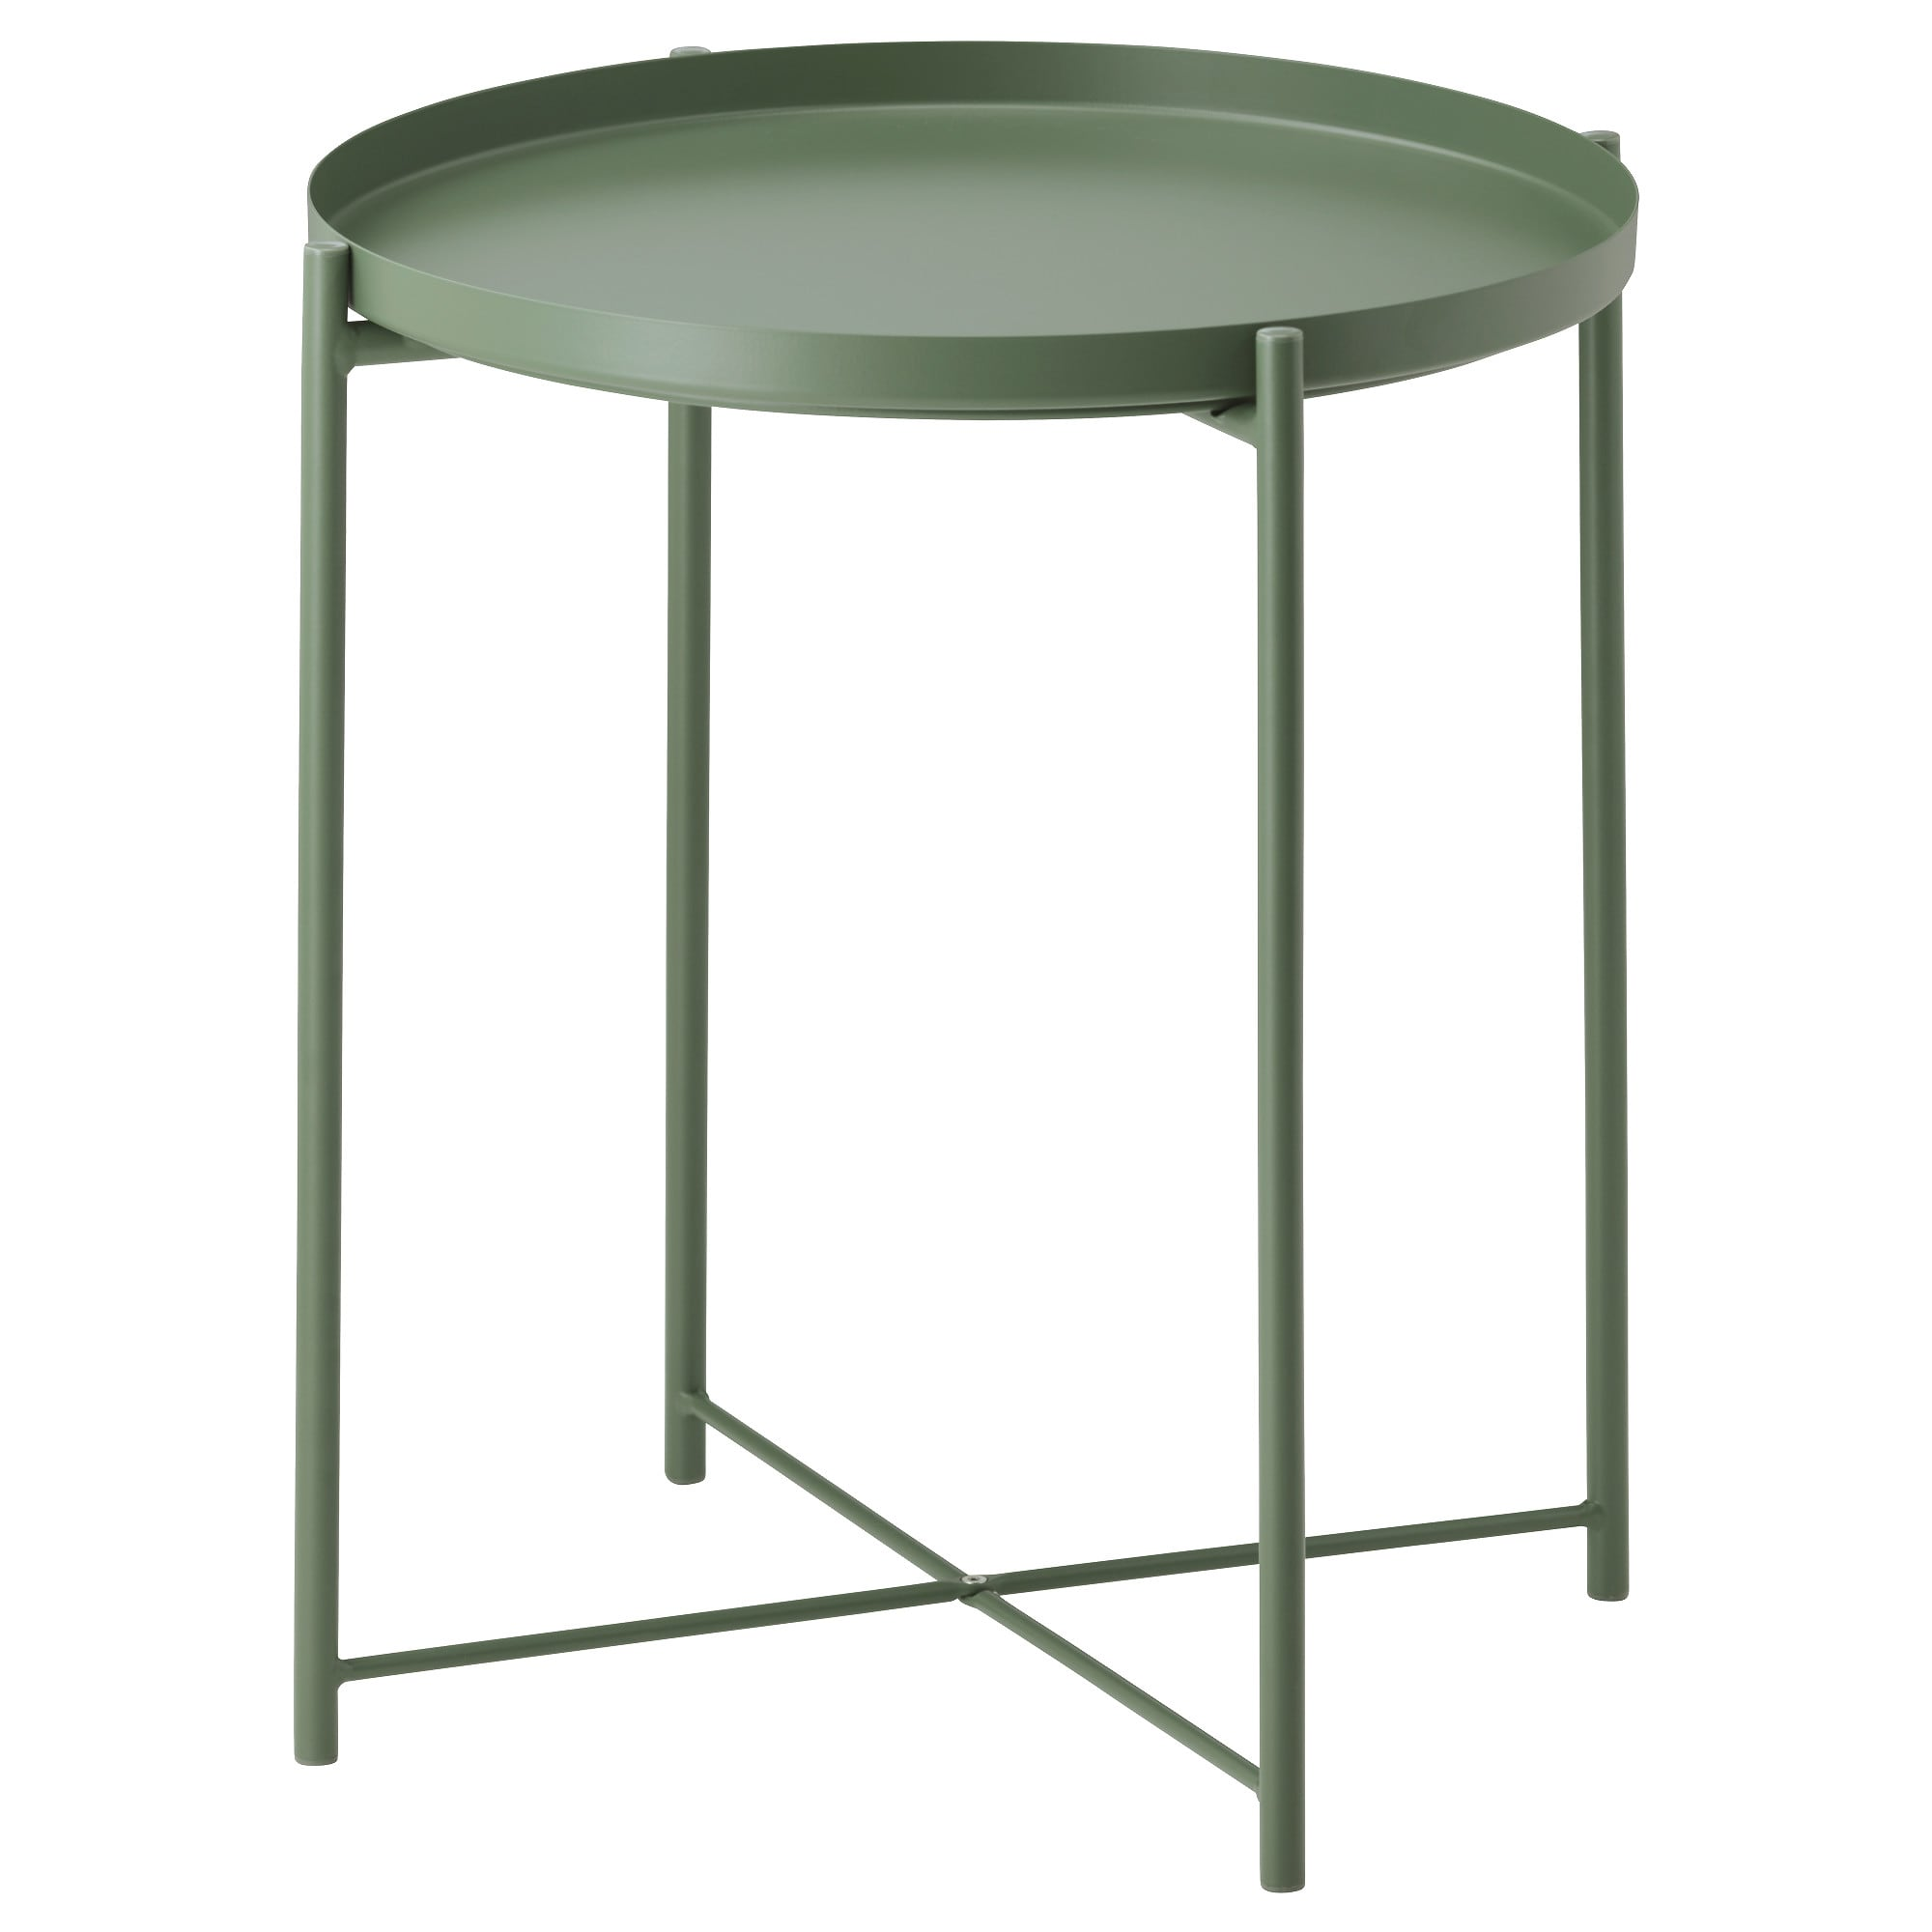 gladom tray table dark green ikea small accent glass top outdoor coffee drop leaf kitchen tables for spaces reclaimed wood conference room essentials hanging lights modern rustic